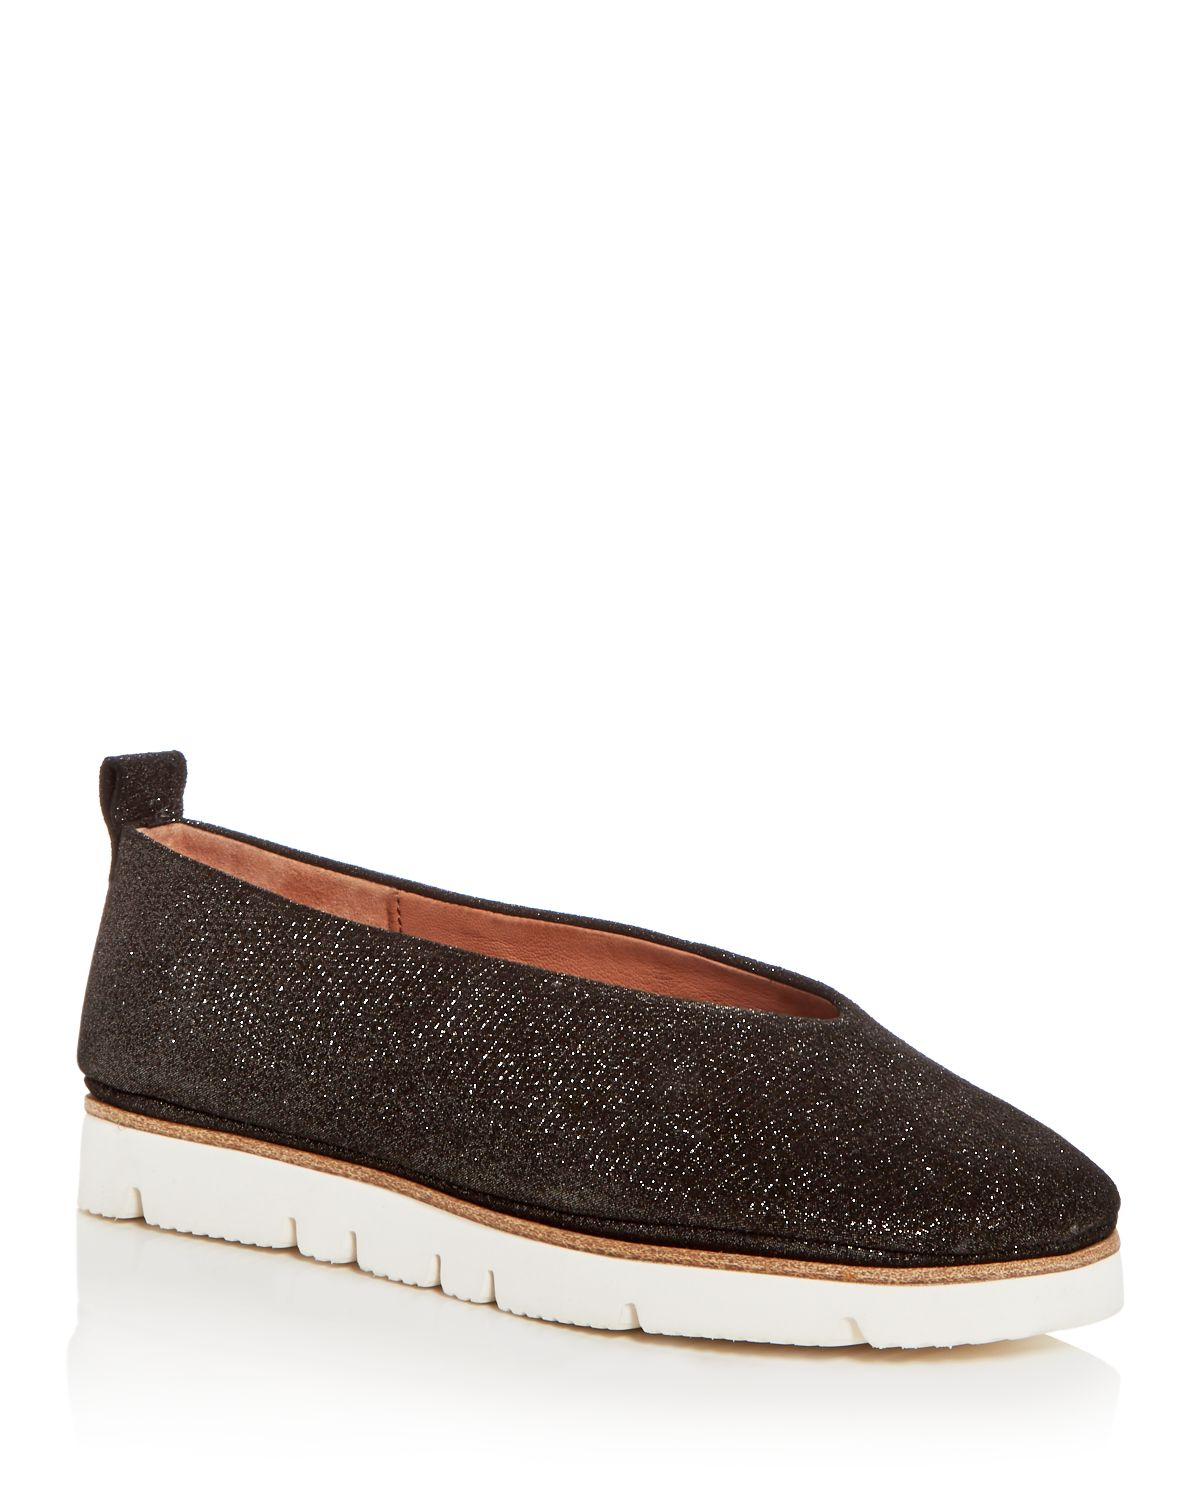 Demi Glitter Leather Flat - Shoe Gentle Souls